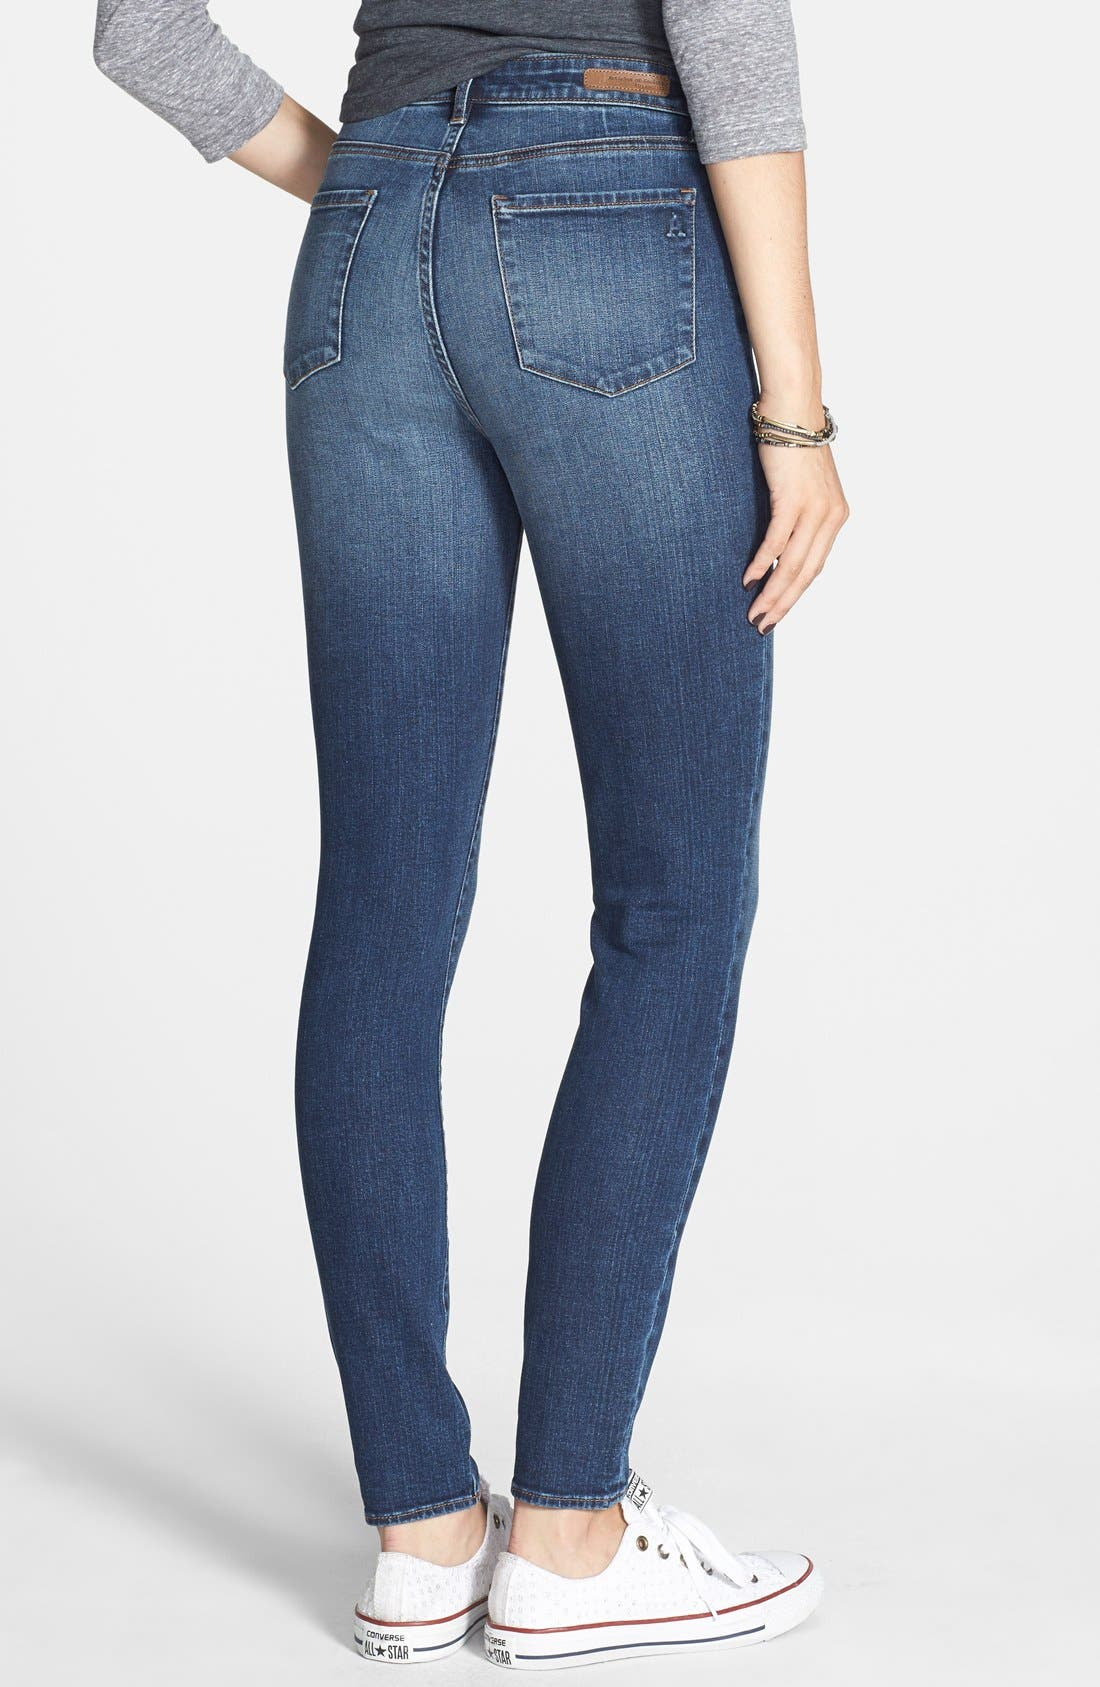 Alternate Image 2  - Articles of Society 'Halley' High Waist Skinny Jeans (Twilight Wash)